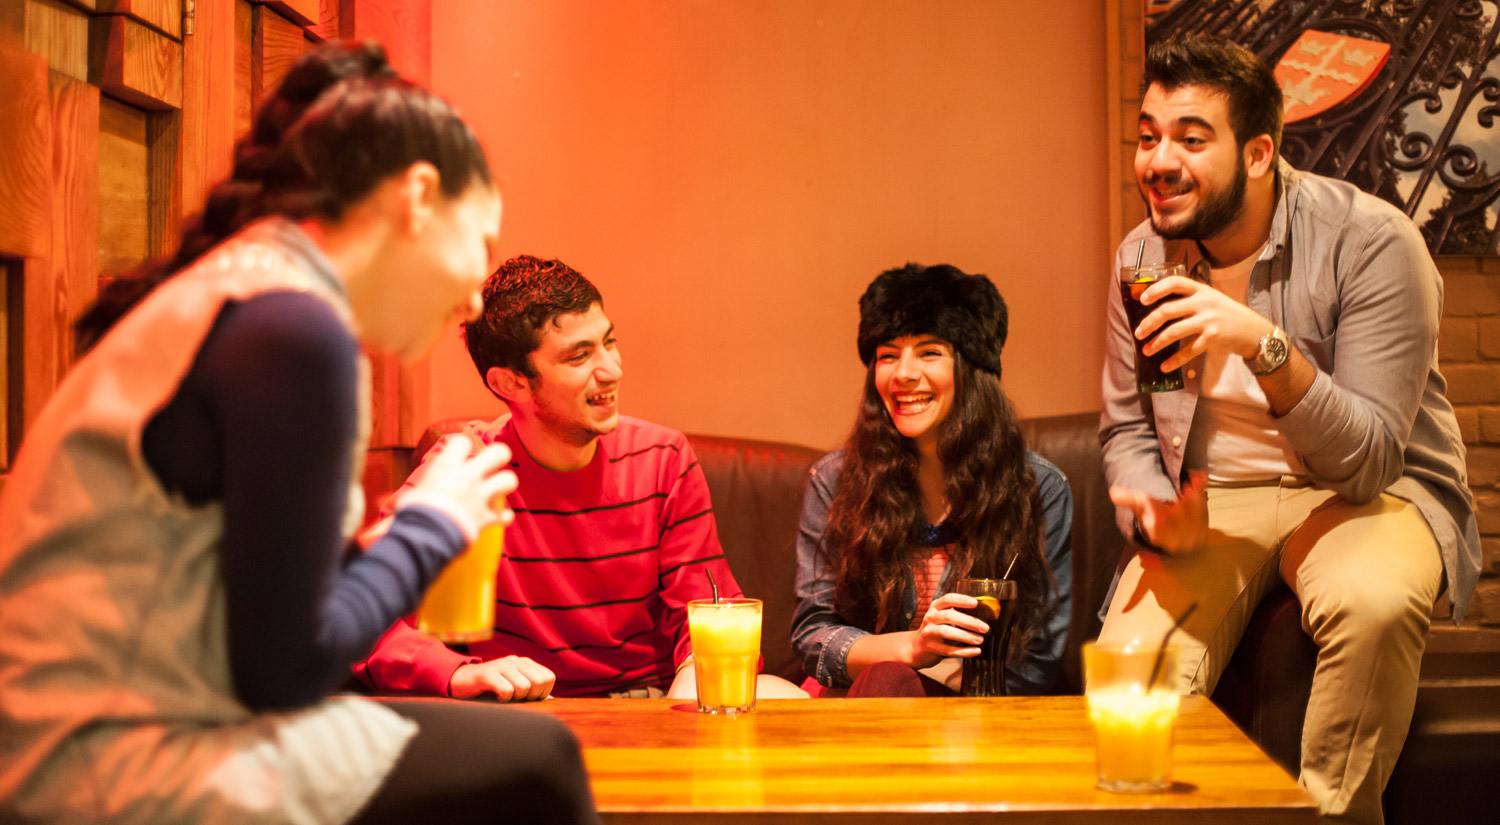 There are plenty of places to meet-up outside your studies